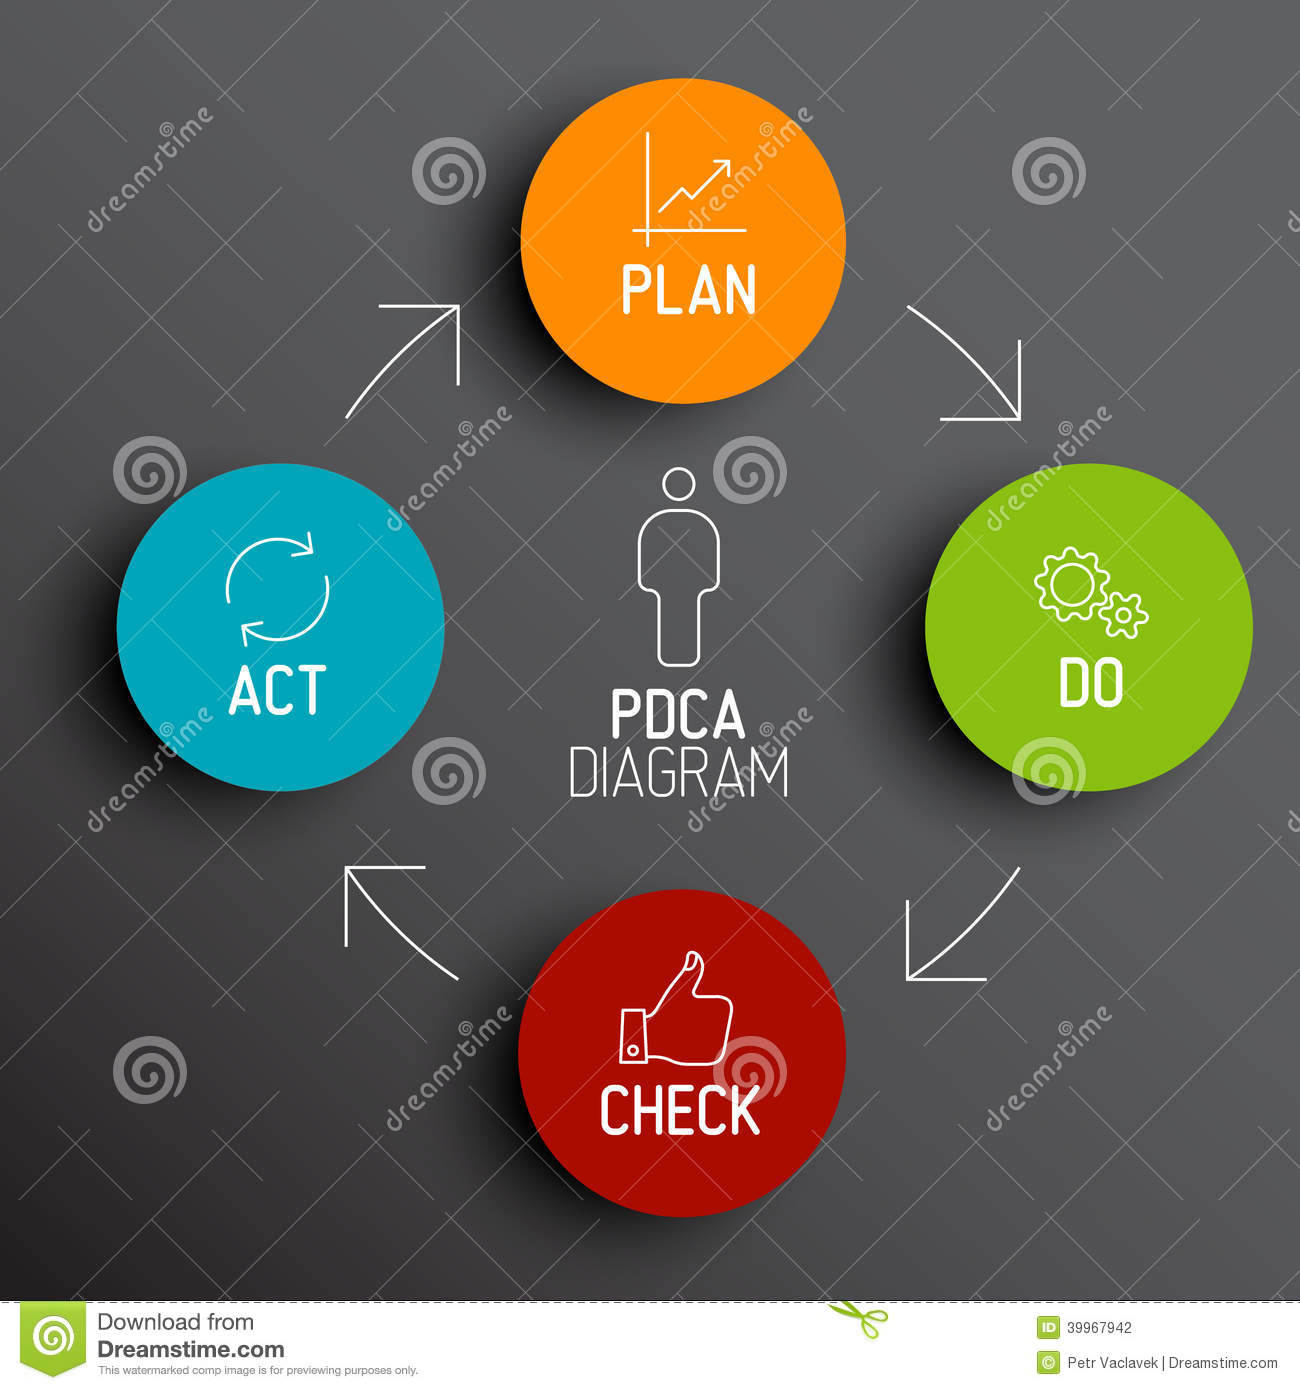 pdca cycle diagram 2000 toyota camry wiring plan do check act teal render royalty free